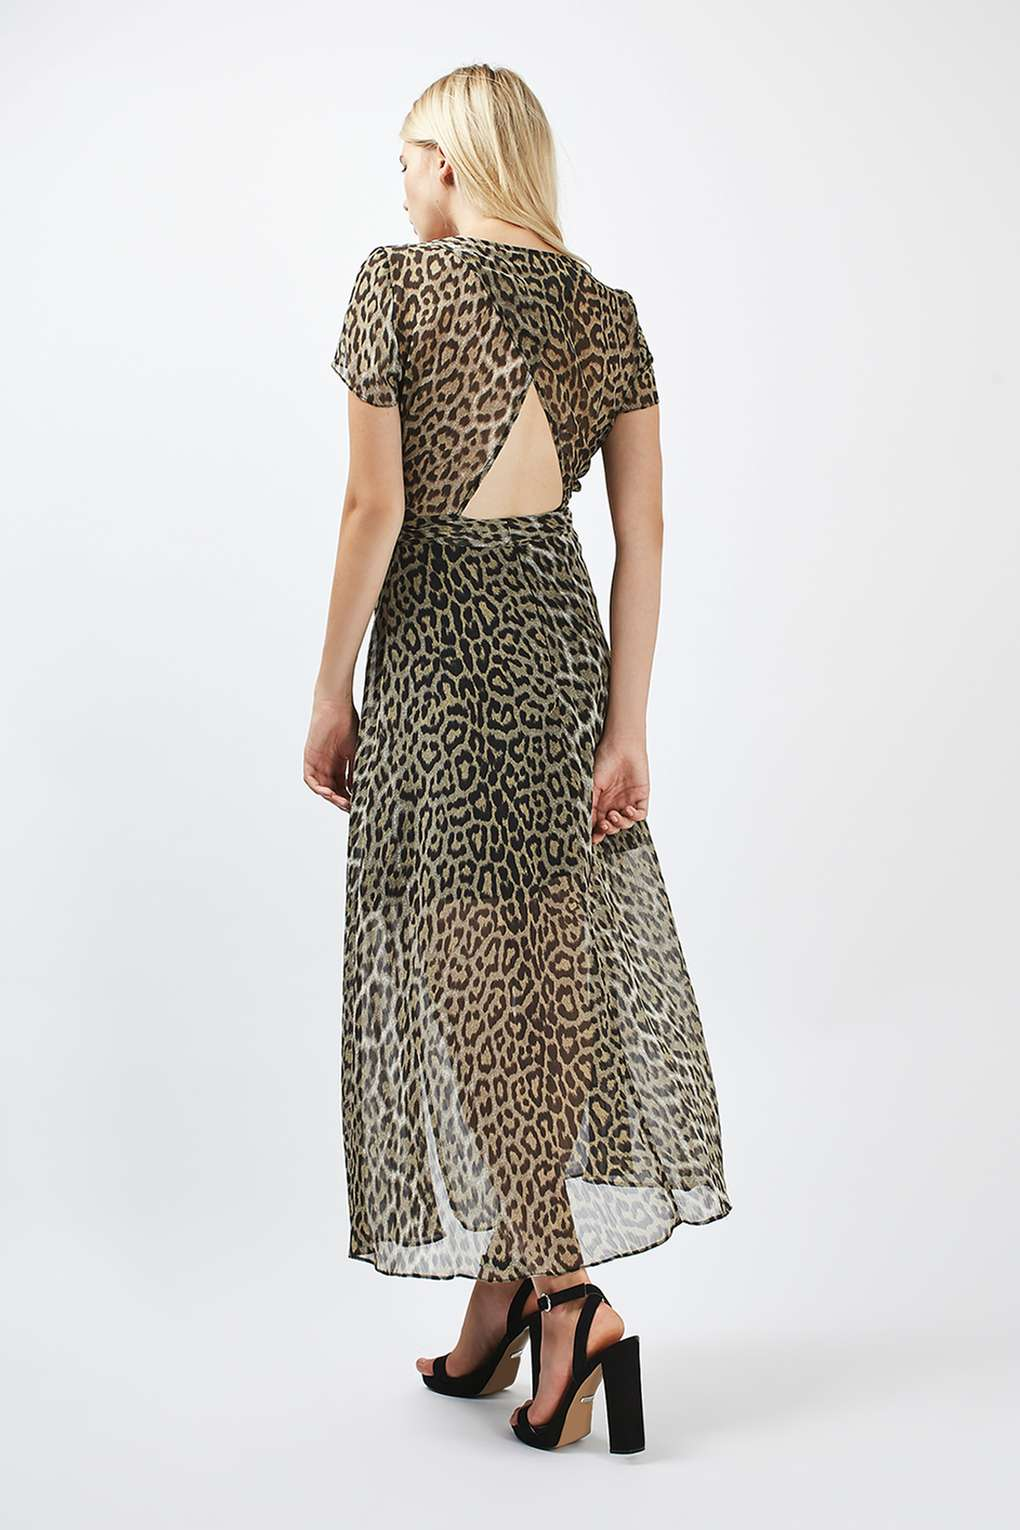 PETITE Leopard Wrap Midi Dress - ShopperBoard ac074b412